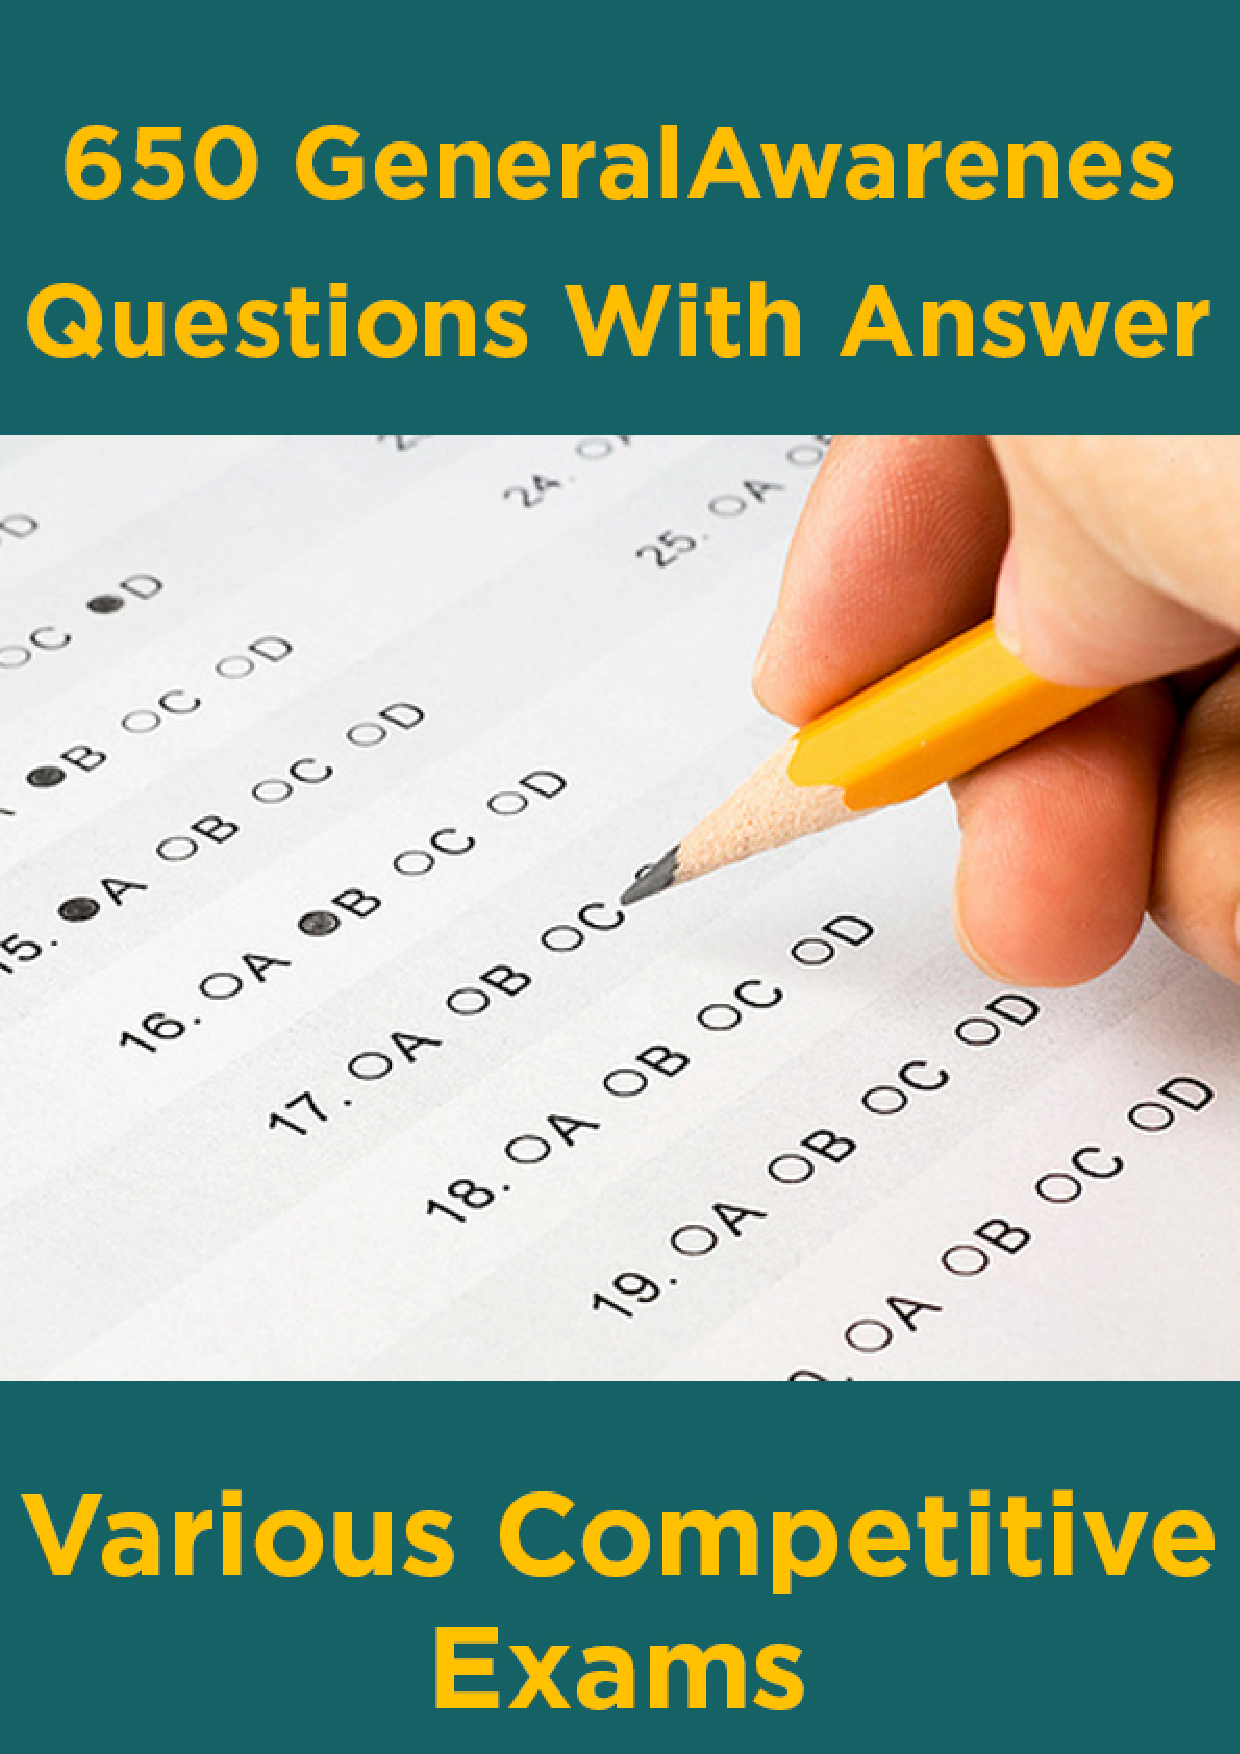 650 General Awareness Questions With Answer For Various Competitive Exams - Page 1